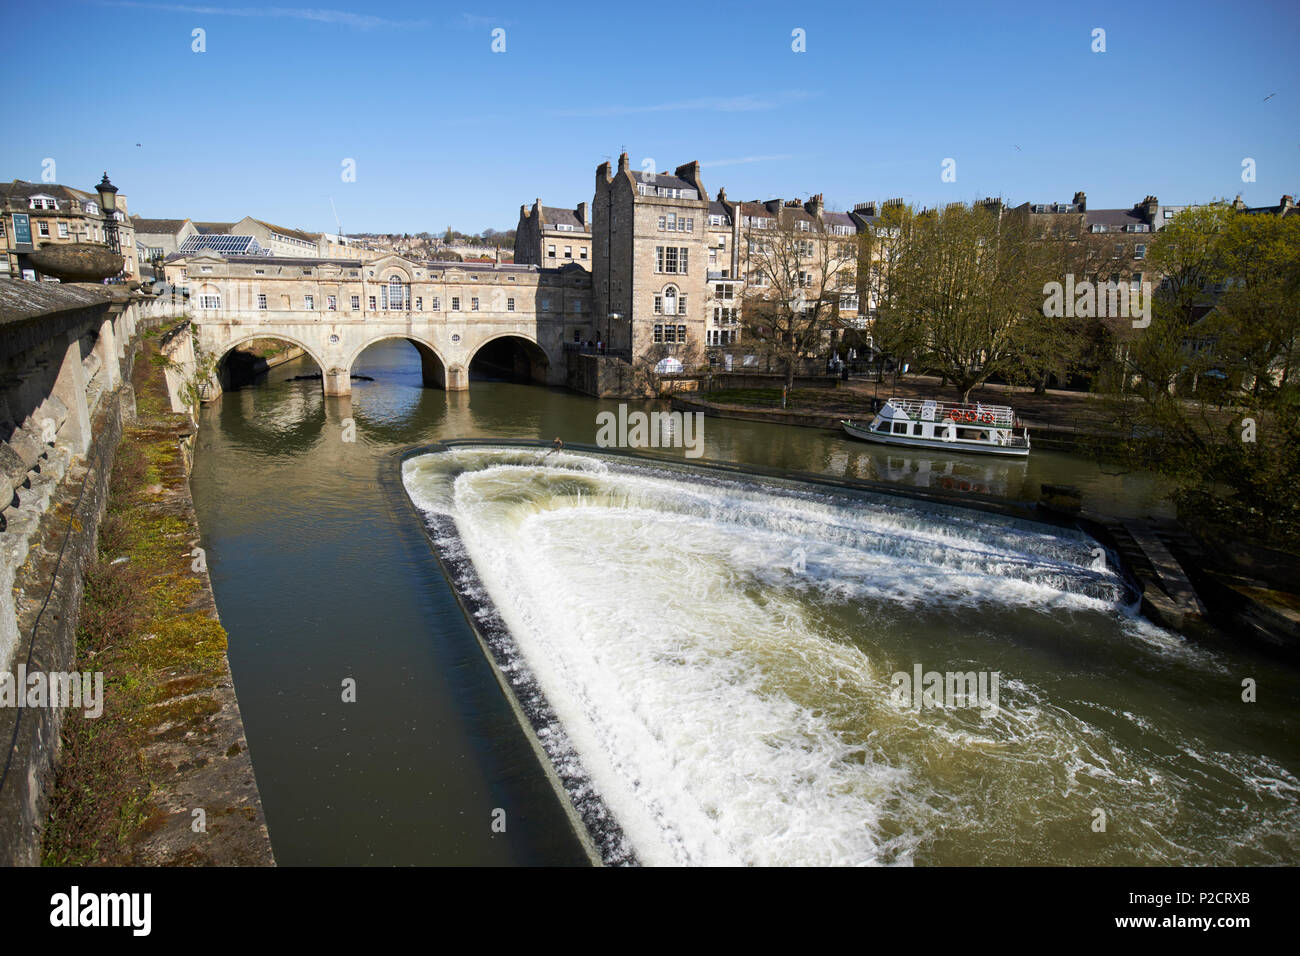 The pulteney bridge pulteney weir on the river avon in Bath city centre England UK - Stock Image